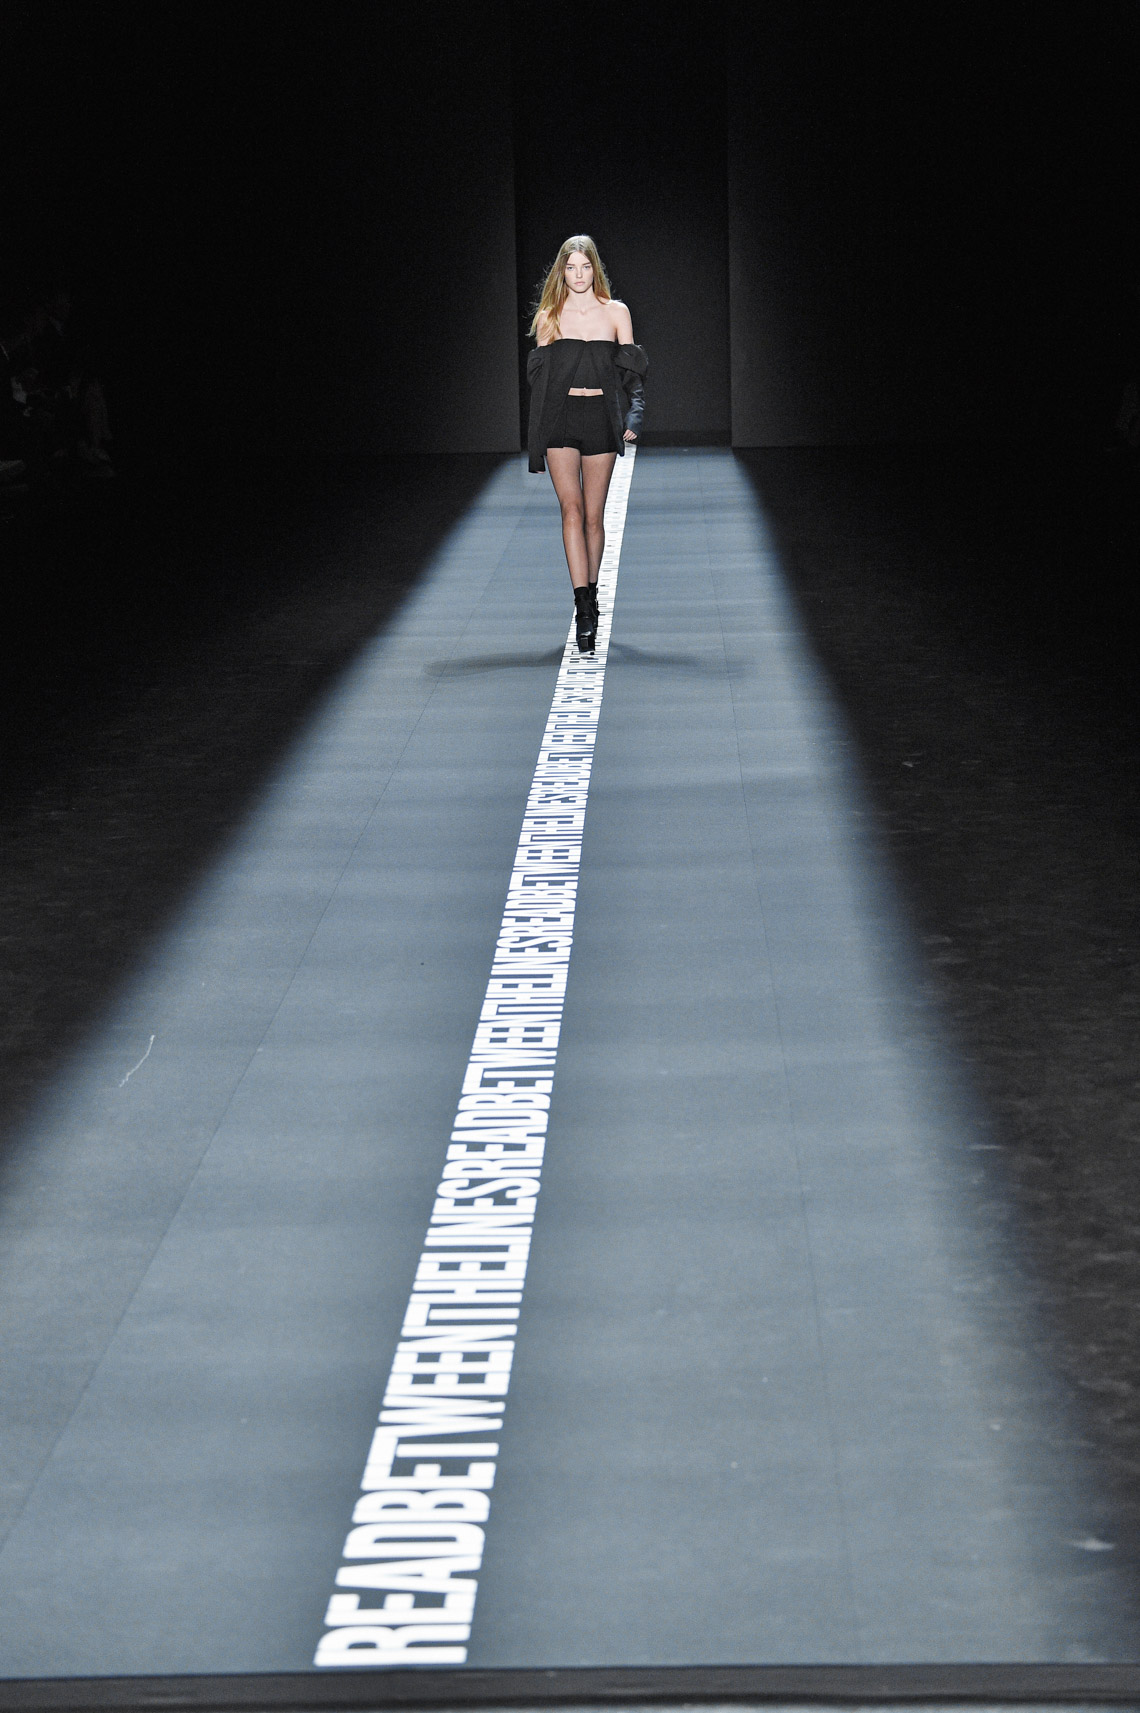 Thomas_Kletecka_Photography_Runway__0005